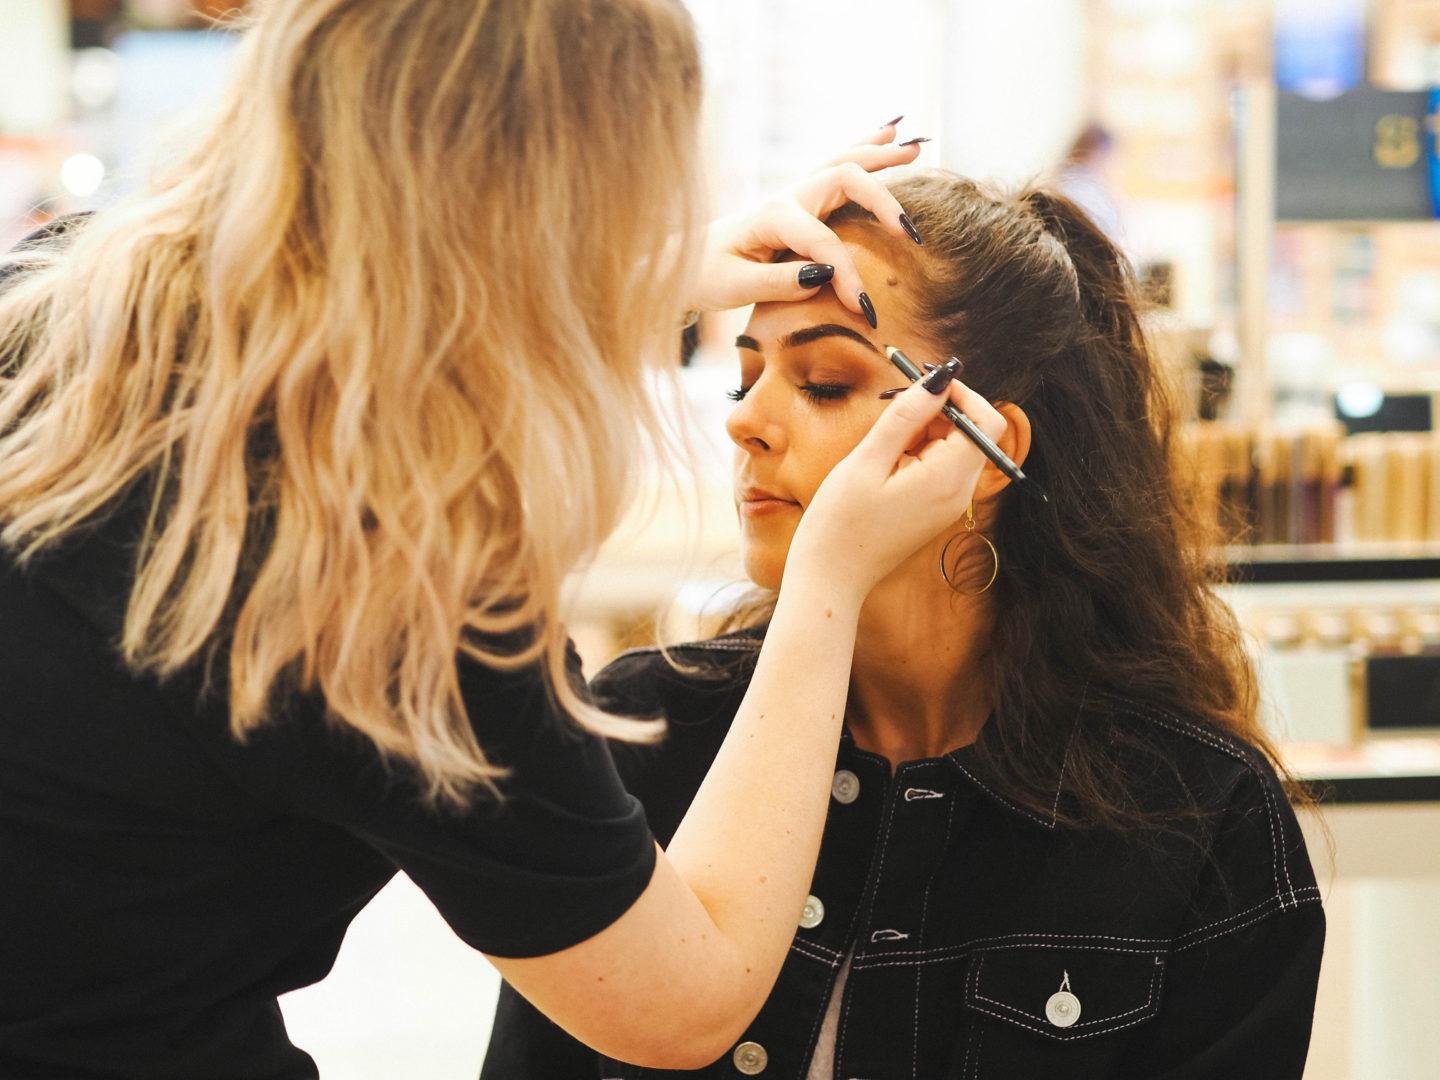 THE BROW GAL EXPERIENCE